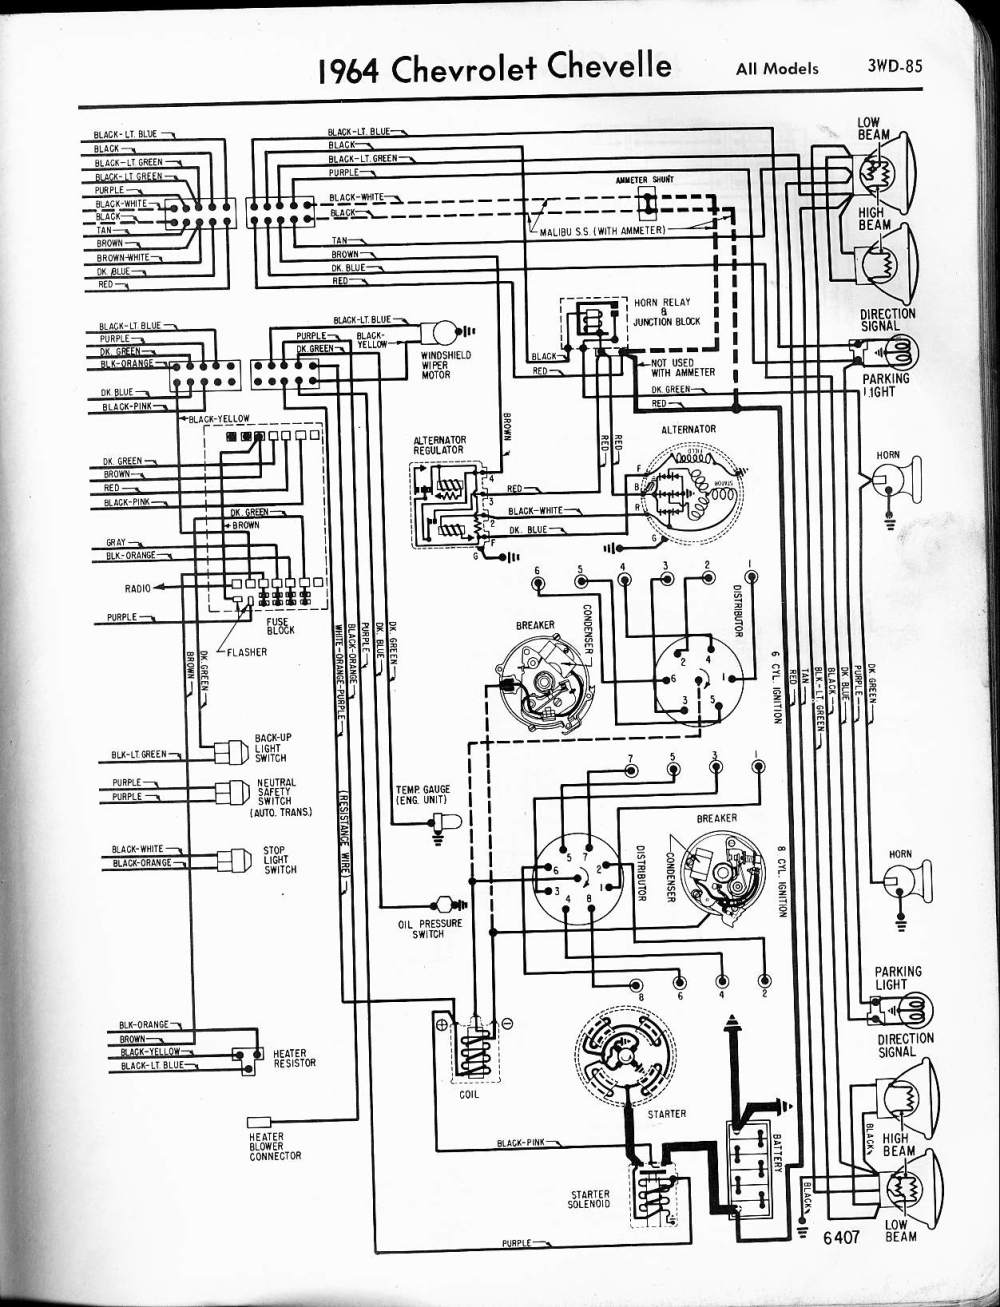 medium resolution of 1964 mustang fuse box diagram wiring library wiring diagram 1964 impala 65 mustang rear seat belt location diagram